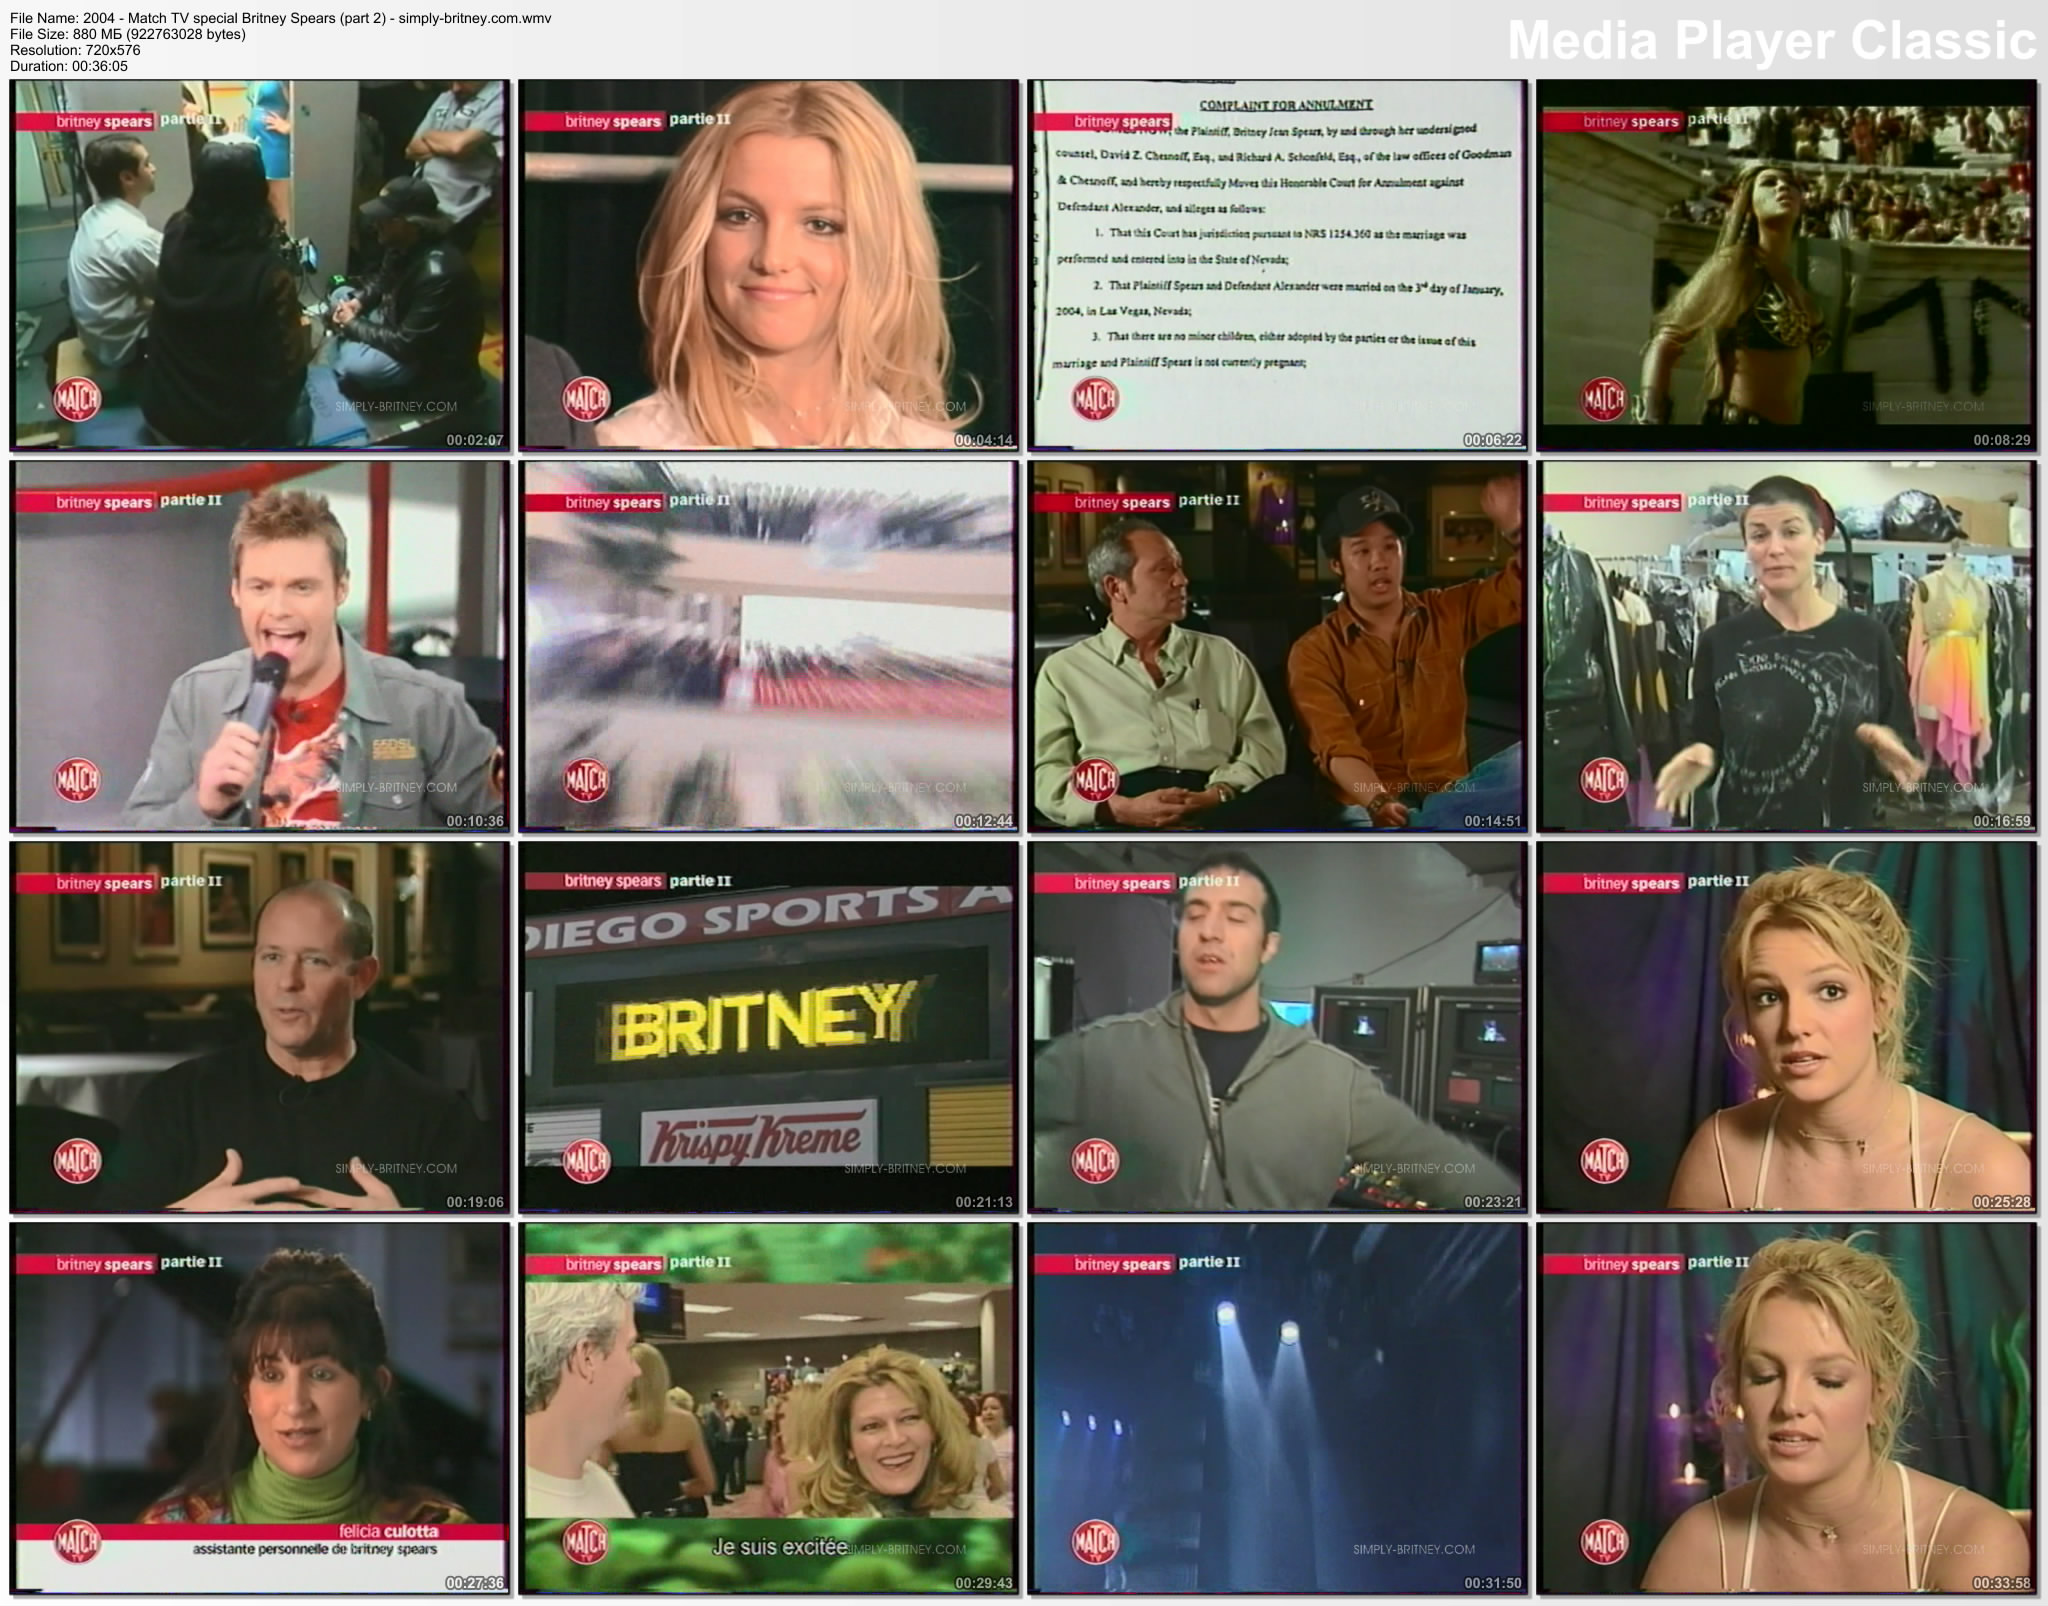 2004 - Match TV special Britney Spears (part 2) - simply-britney.com.wmv_thumbs_[2020.03.16_22.07.12].jpg